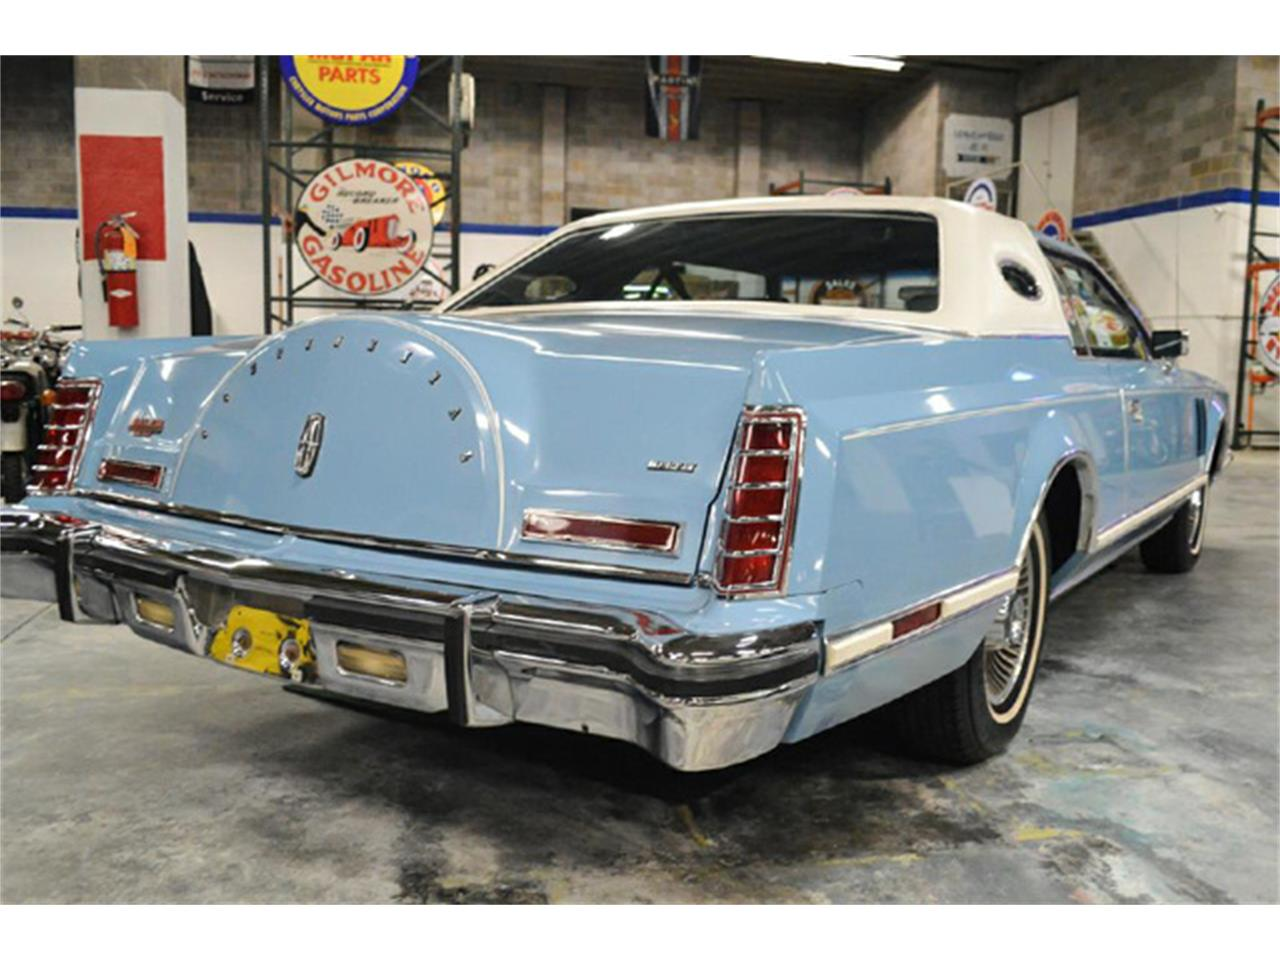 1978 Lincoln Continental (CC-1387014) for sale in Online, Mississippi